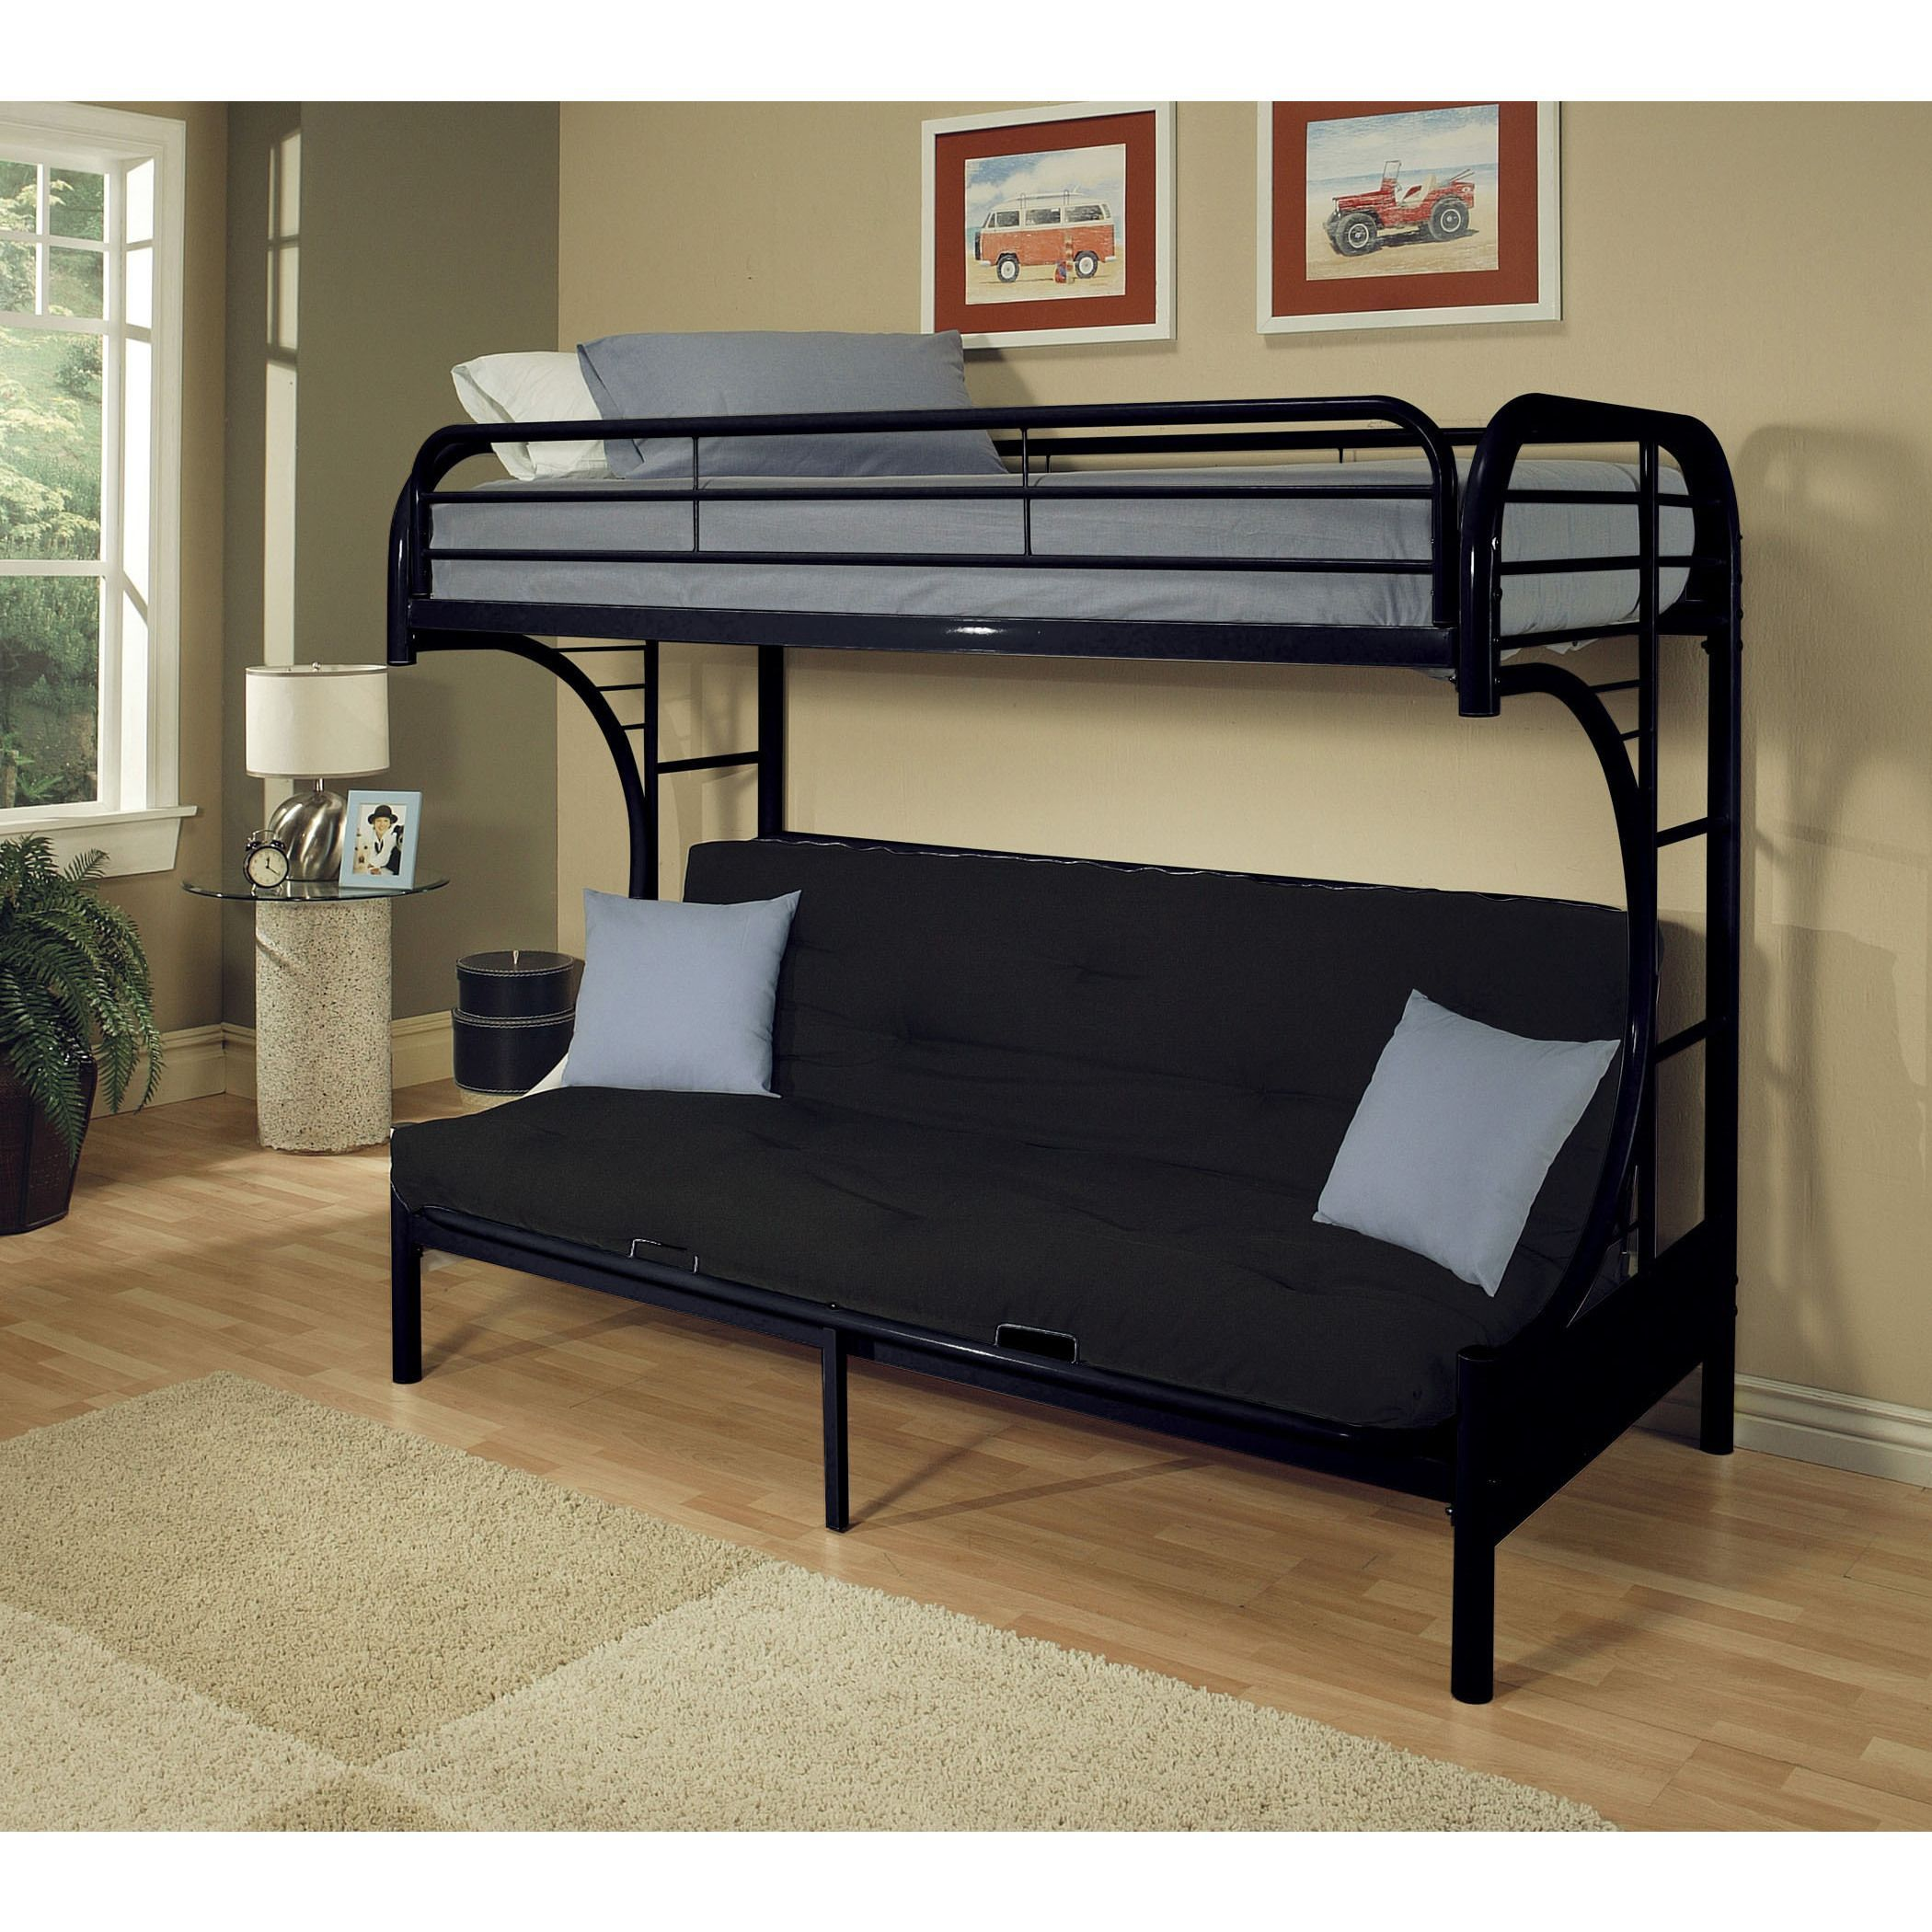 bed full futon steel pin metal modern walker with size twin bunk edison mattress black included